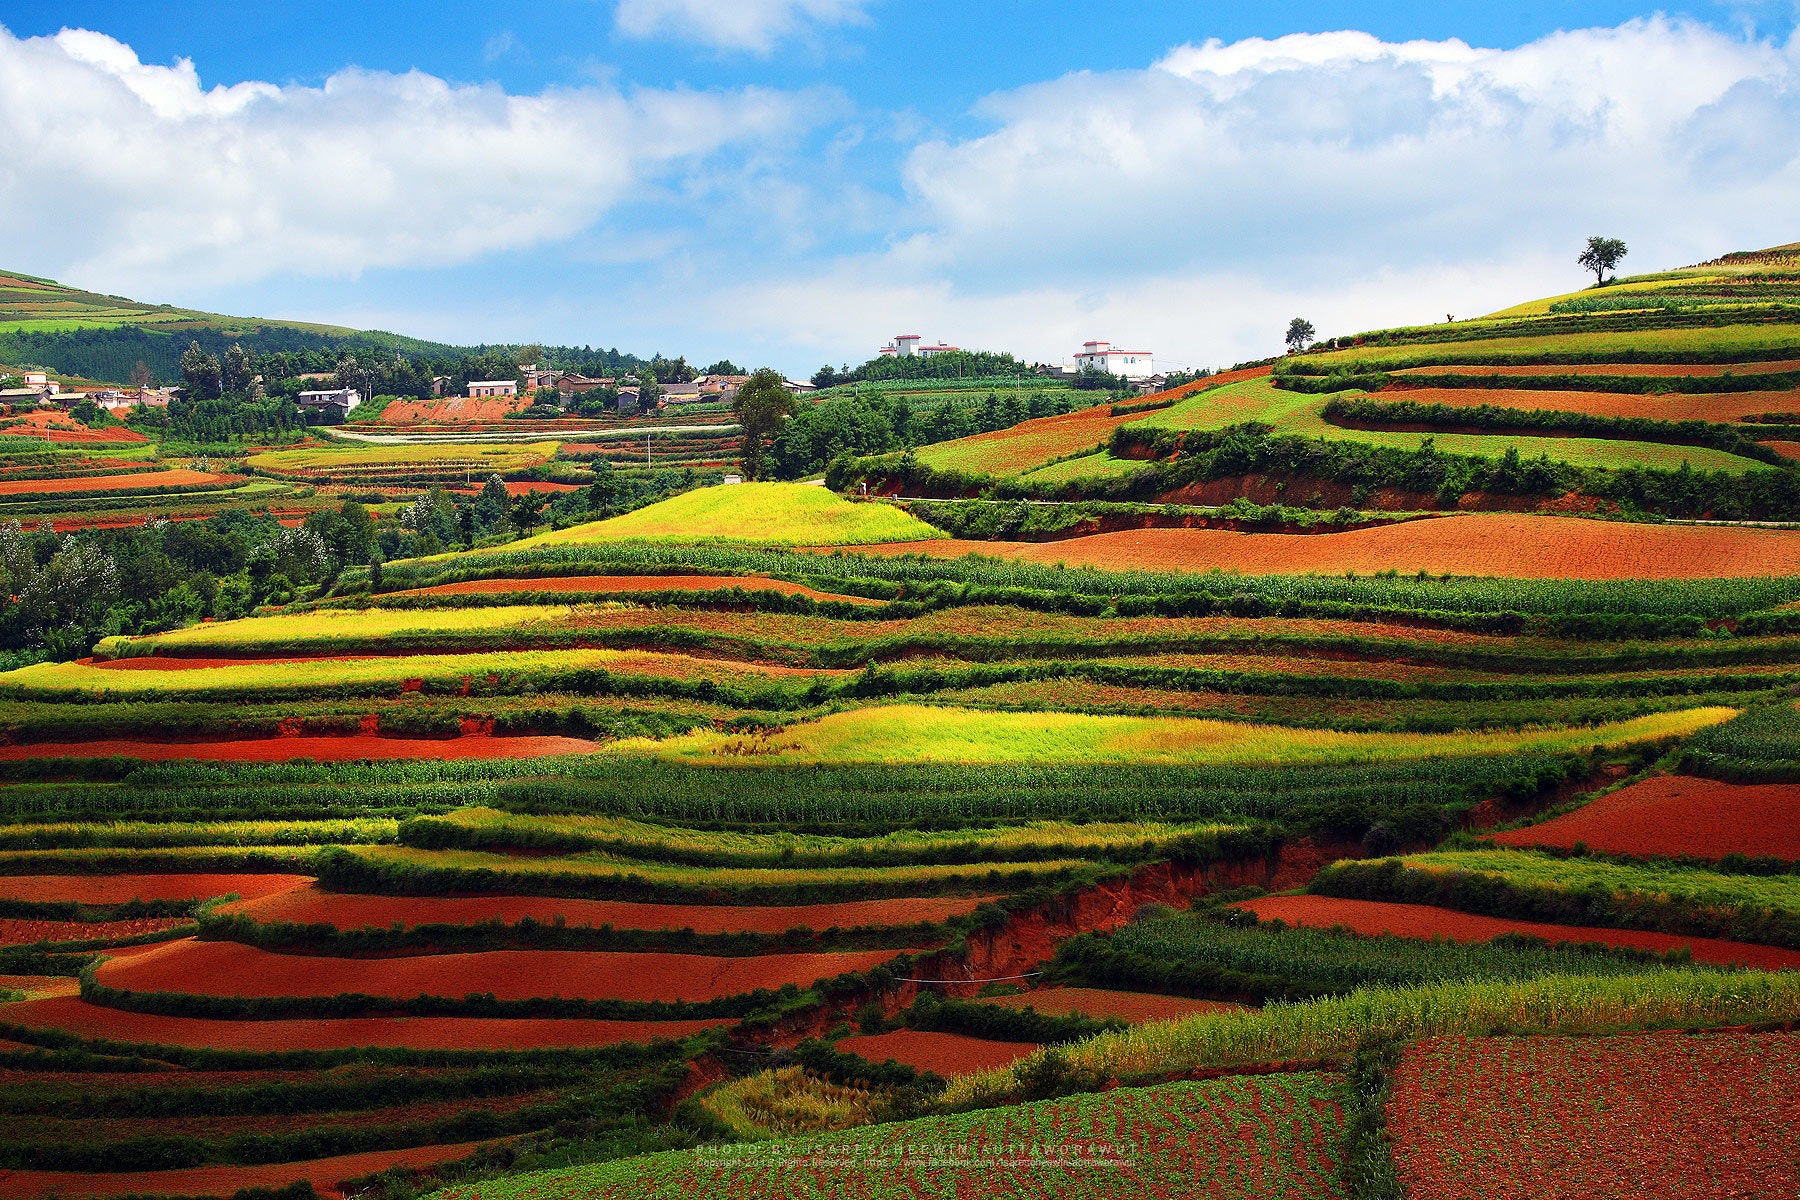 Photograph Red farmland with village,dongchuan,china by isarescheewin auttaworawut on 500px